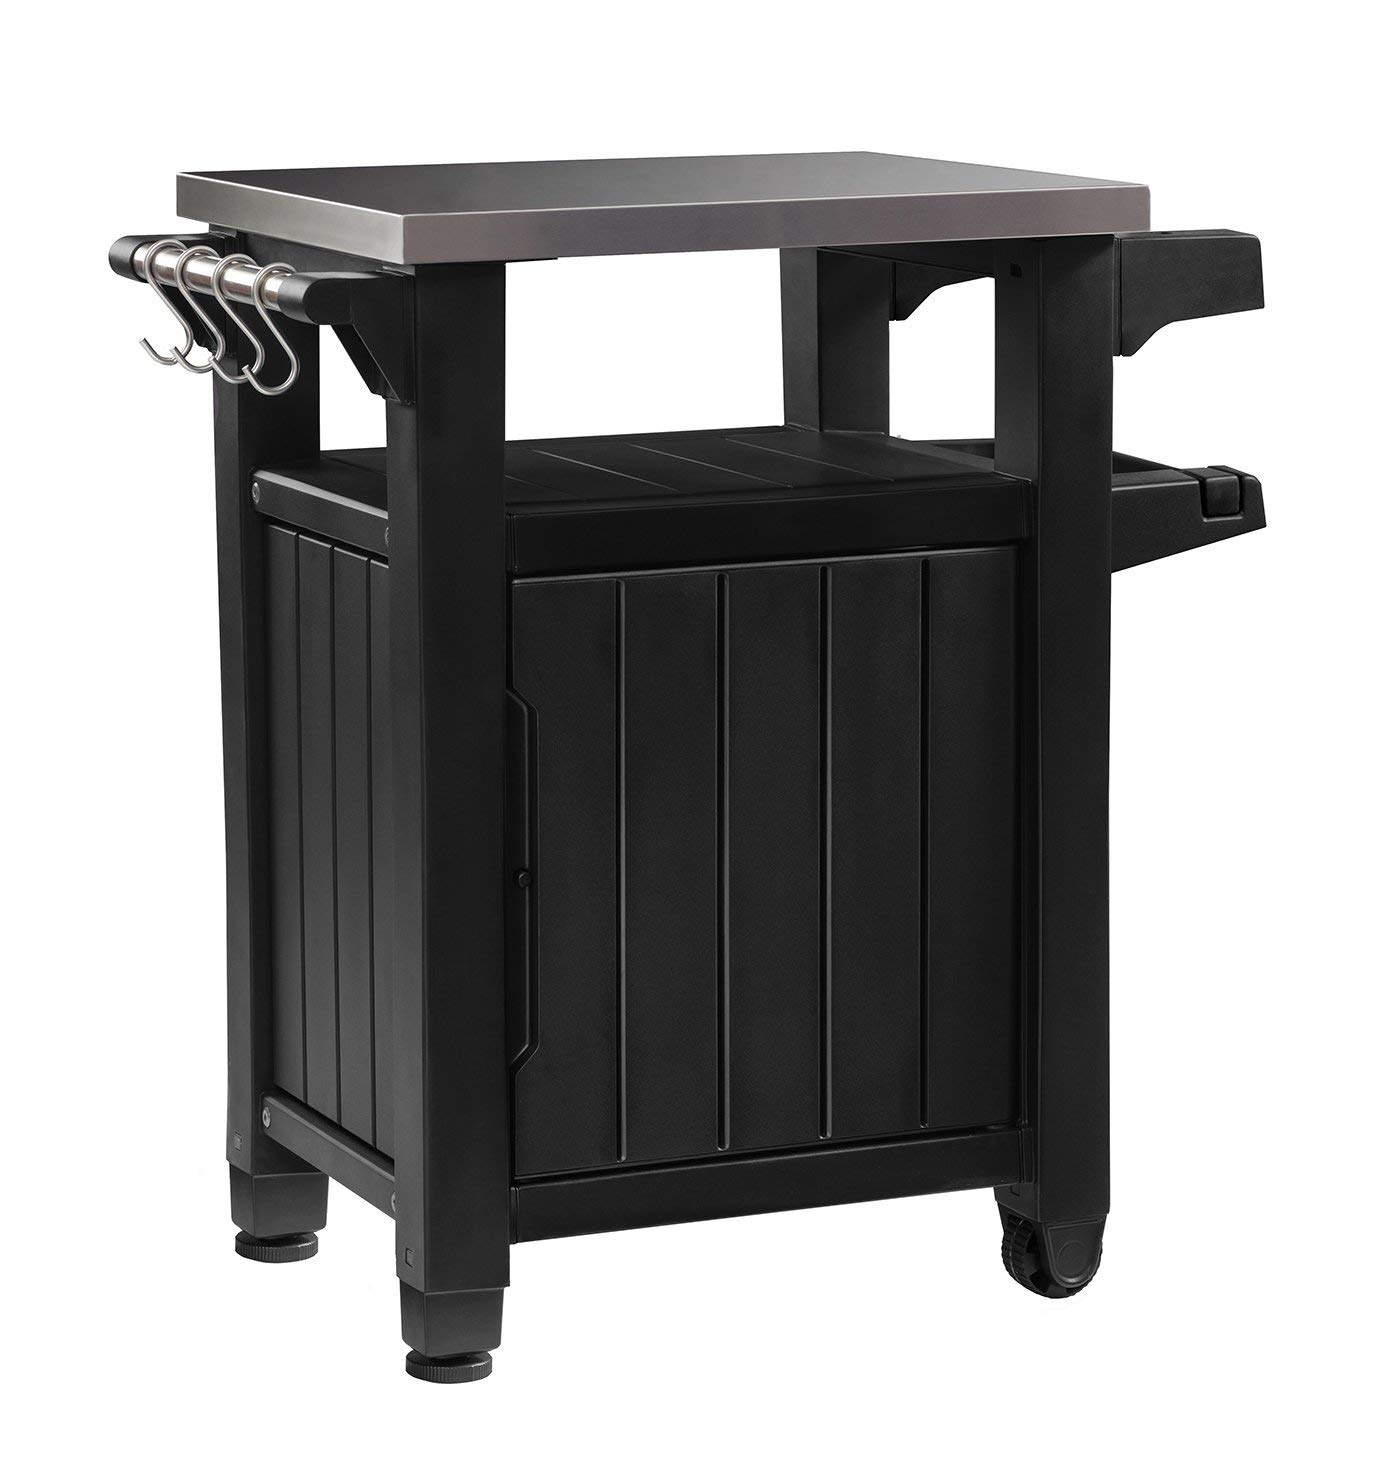 Keter Unity Indoor Outdoor BBQ Entertainment Storage Table/Prep Station with Metal Top, Graphite (Renewed)